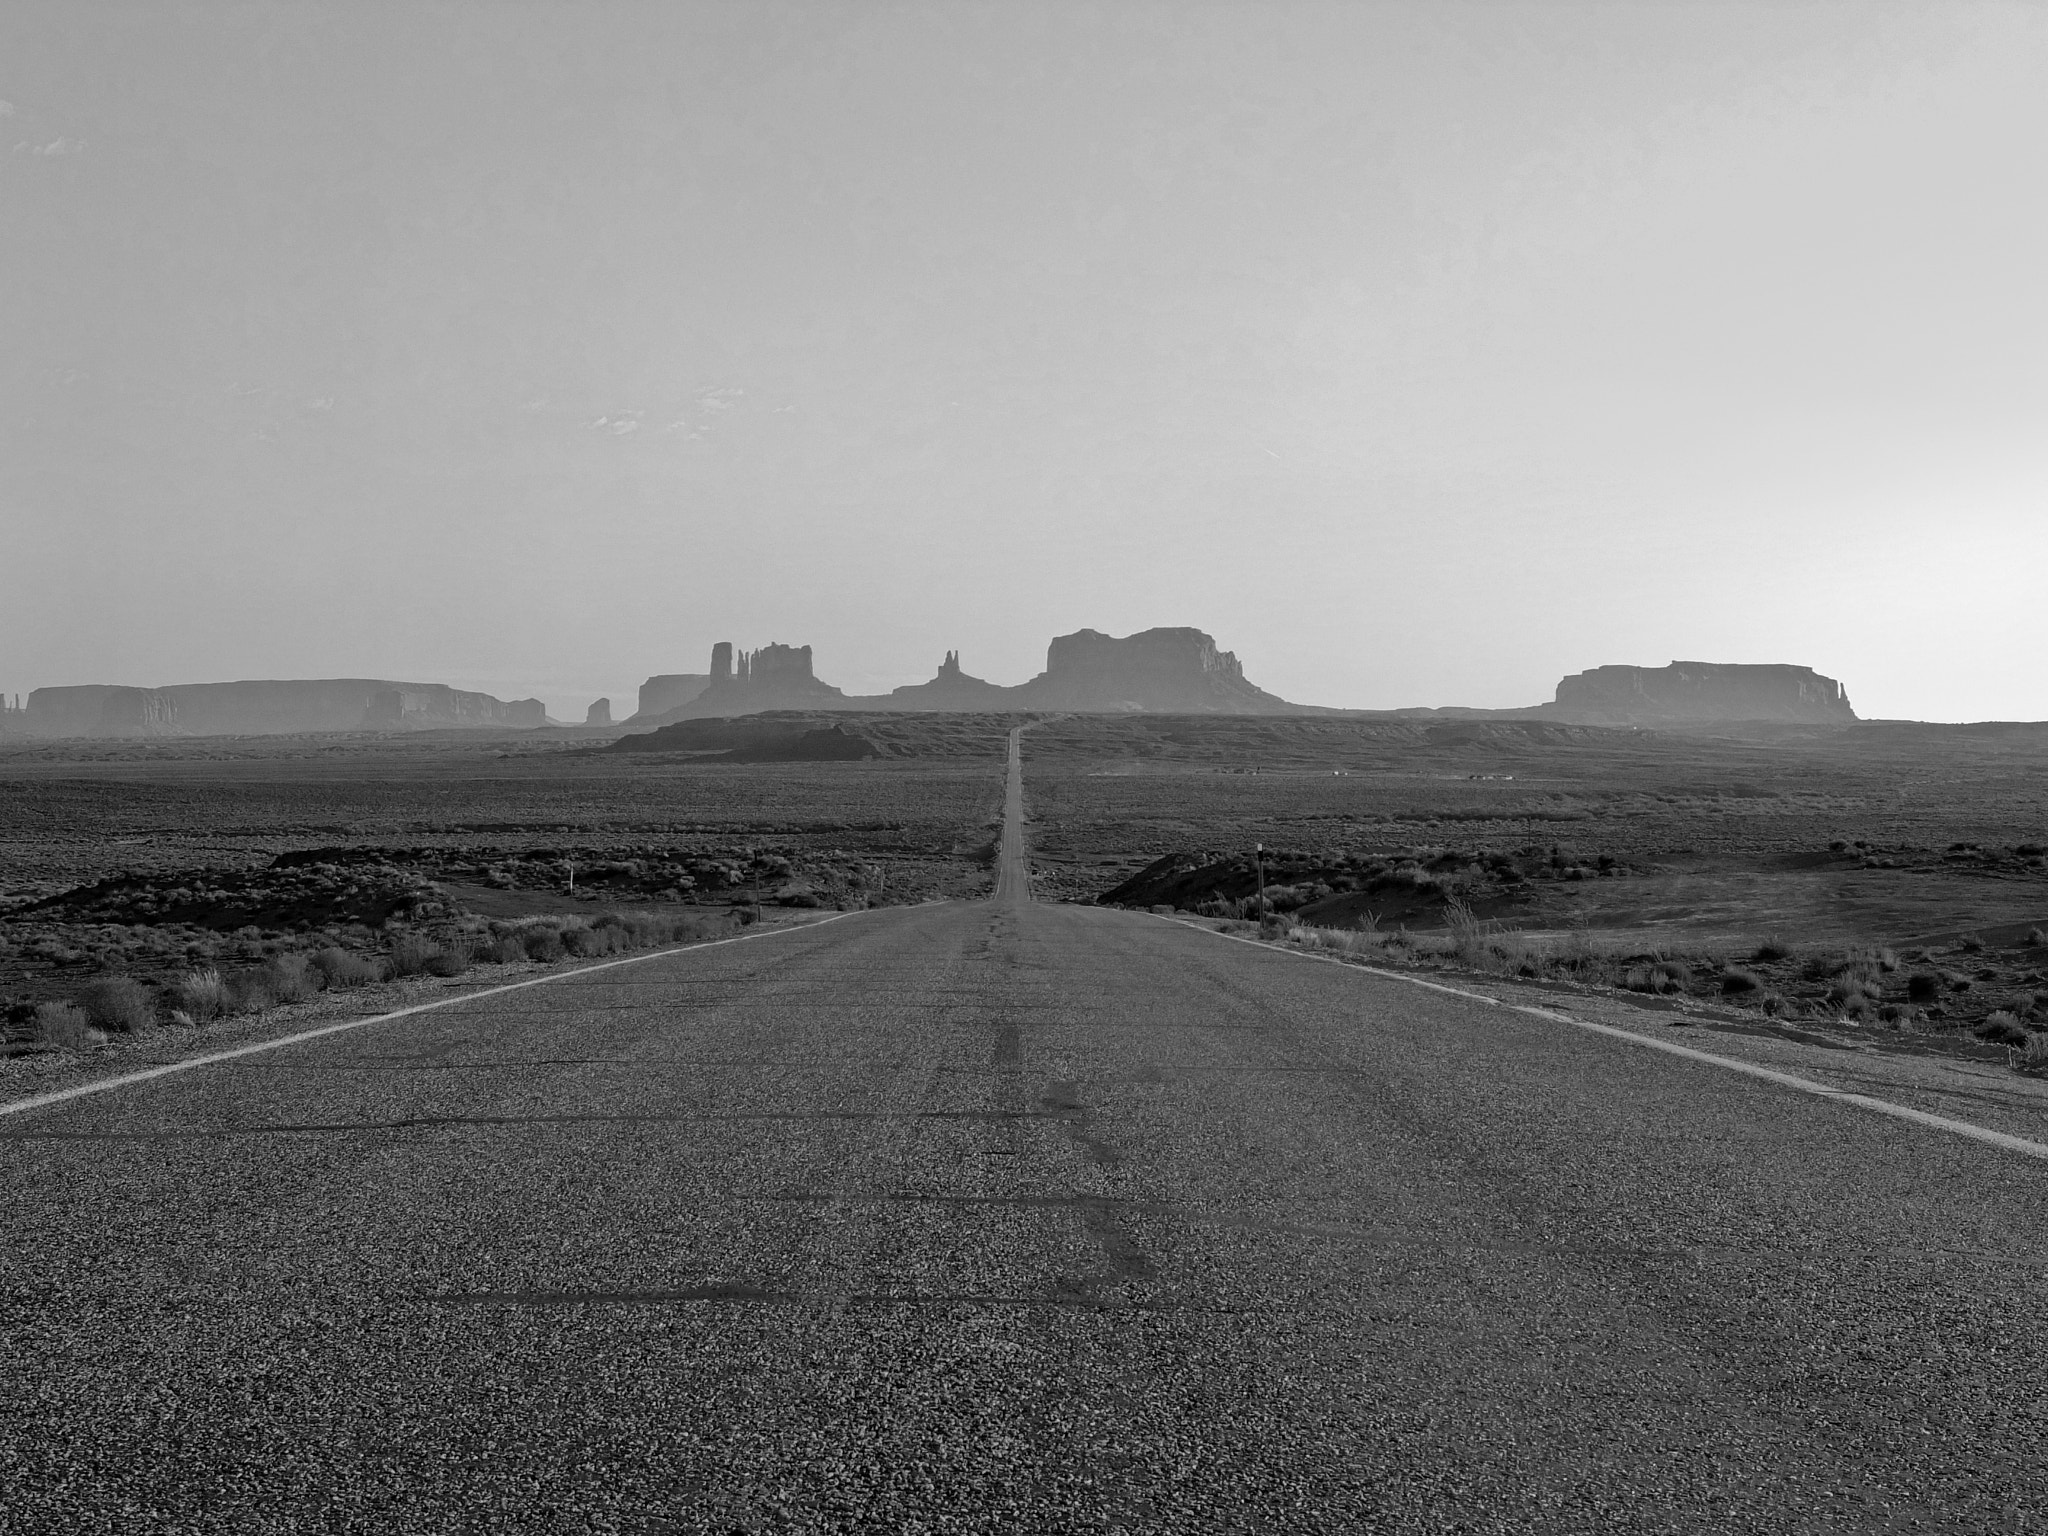 Photograph On the road in b&w by Manuel Perrone on 500px